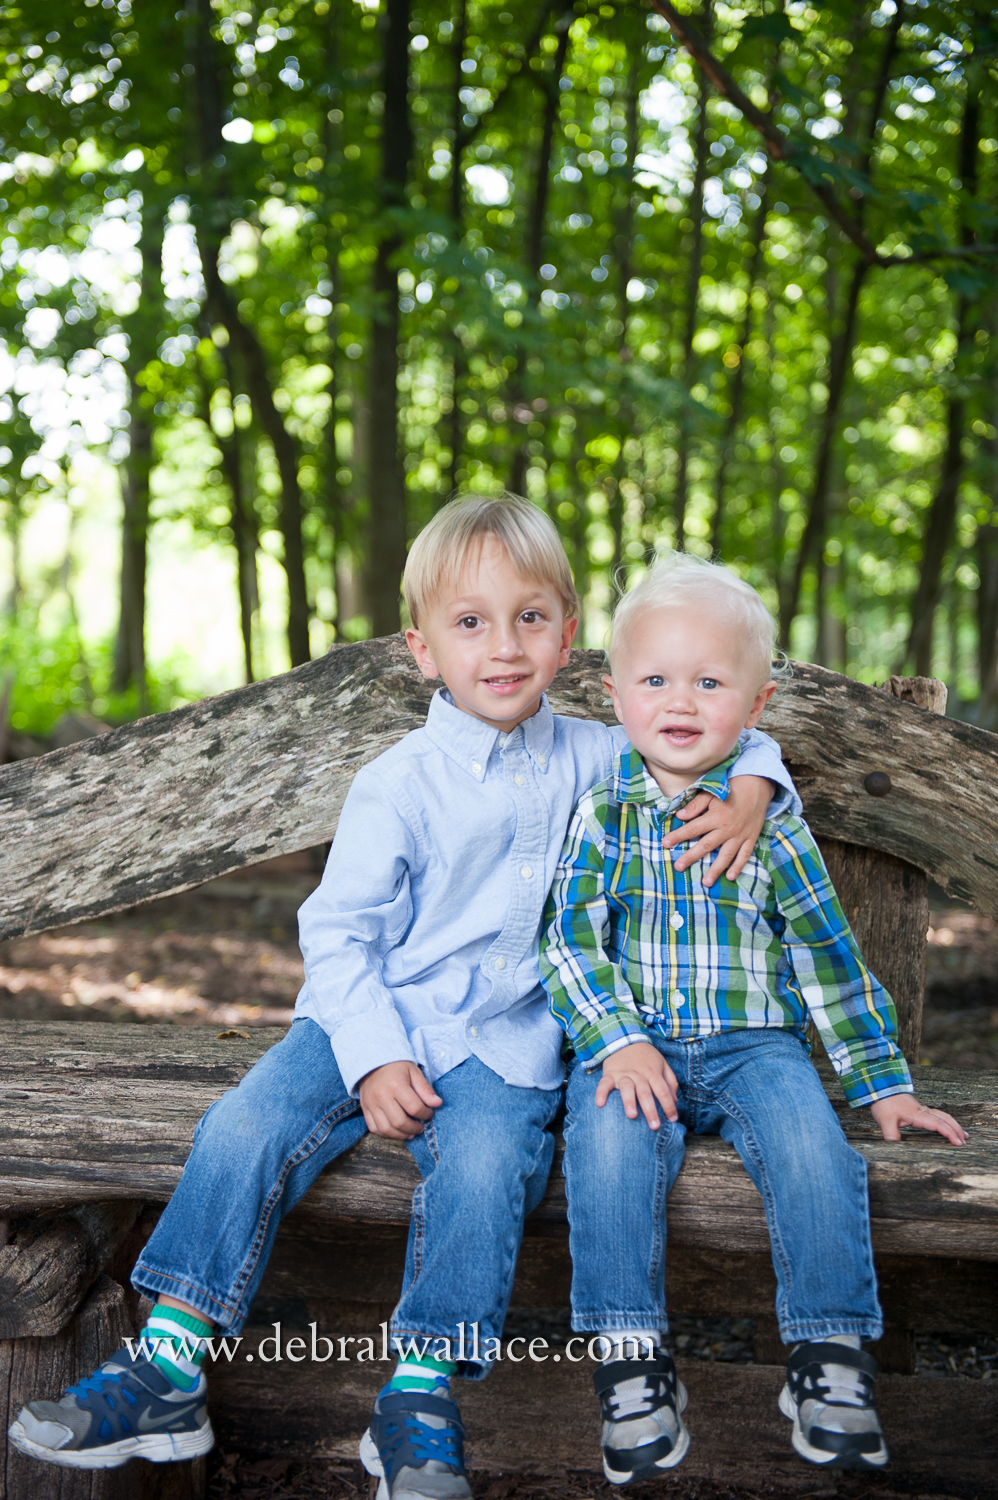 Mendon ponds sibling photography-8373